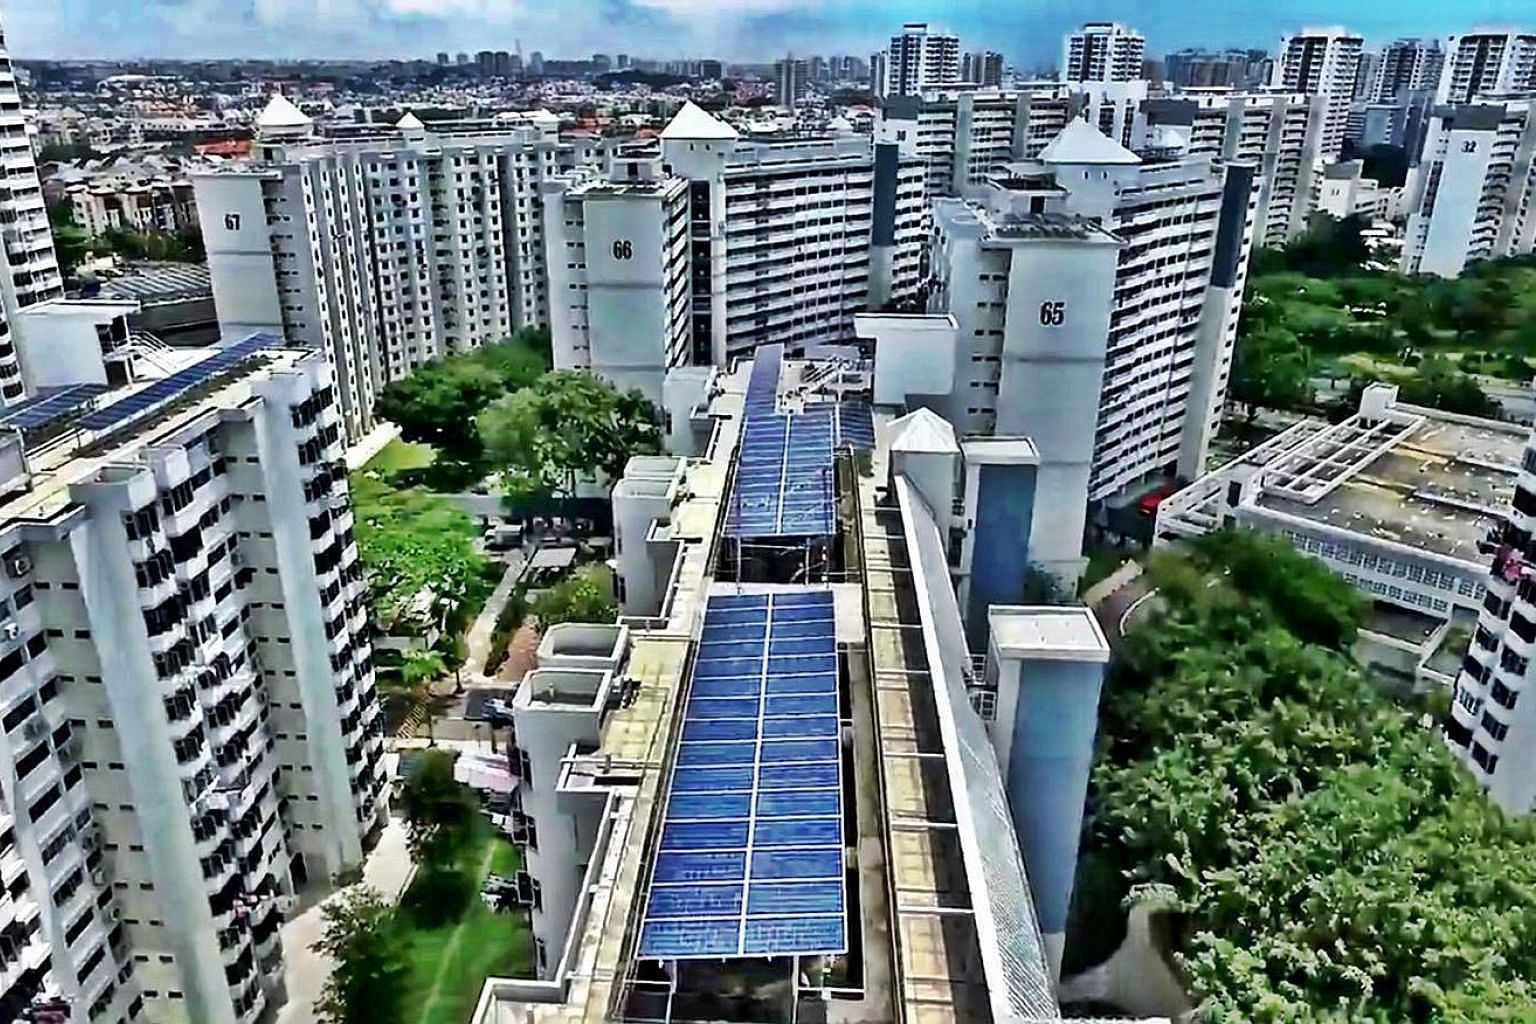 Solar panels installed by energy company Sunseap on Housing Board rooftops. Singapore achieved its 2020 solar deployment target of 350 megawatt-peak in the first quarter. PHOTO: SUNSEAP